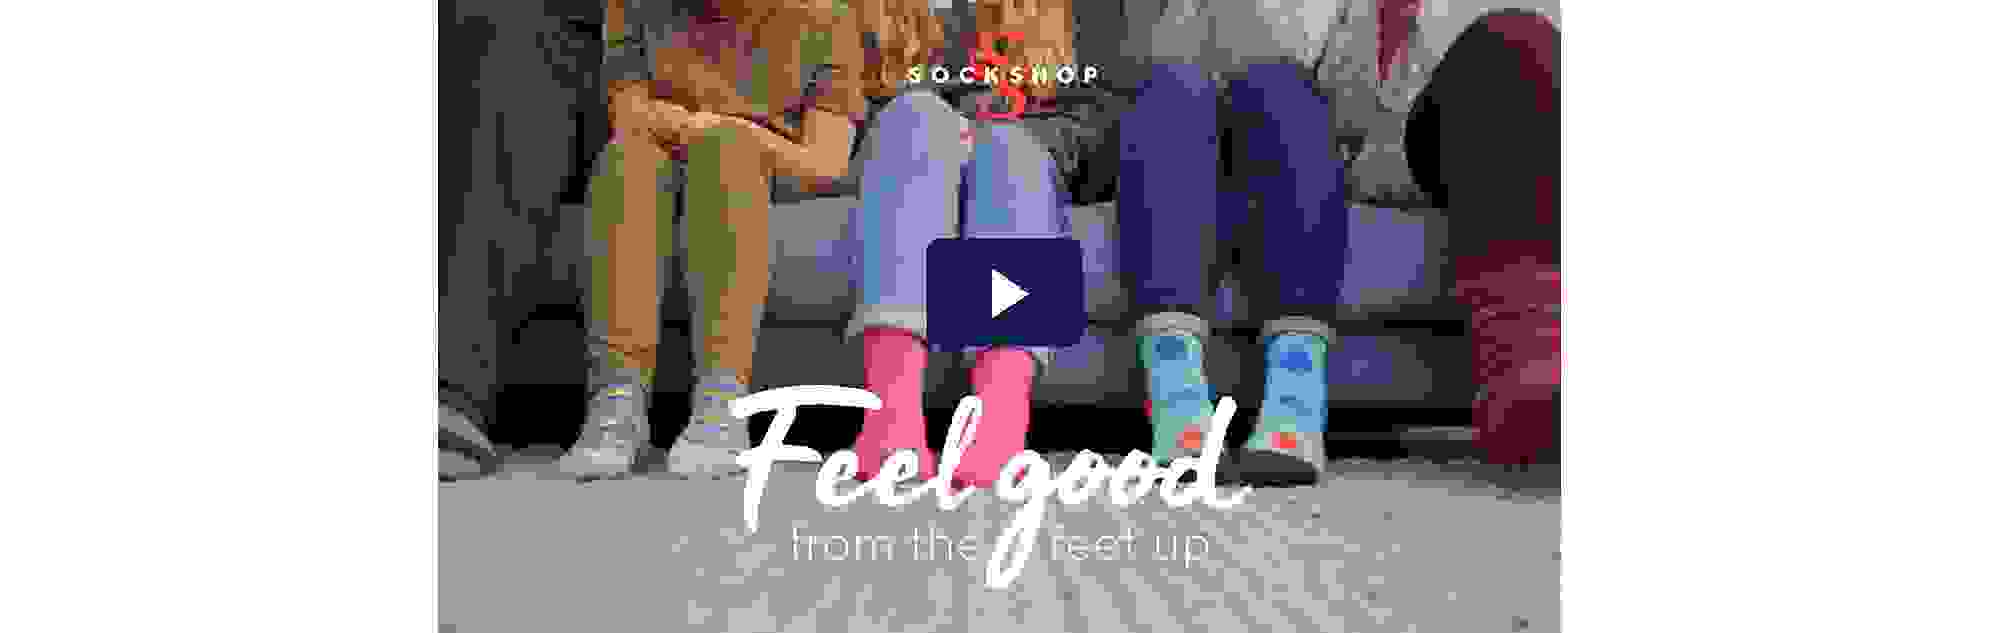 SOCKSHOP socks make you feel good from the feet up - watch our video >